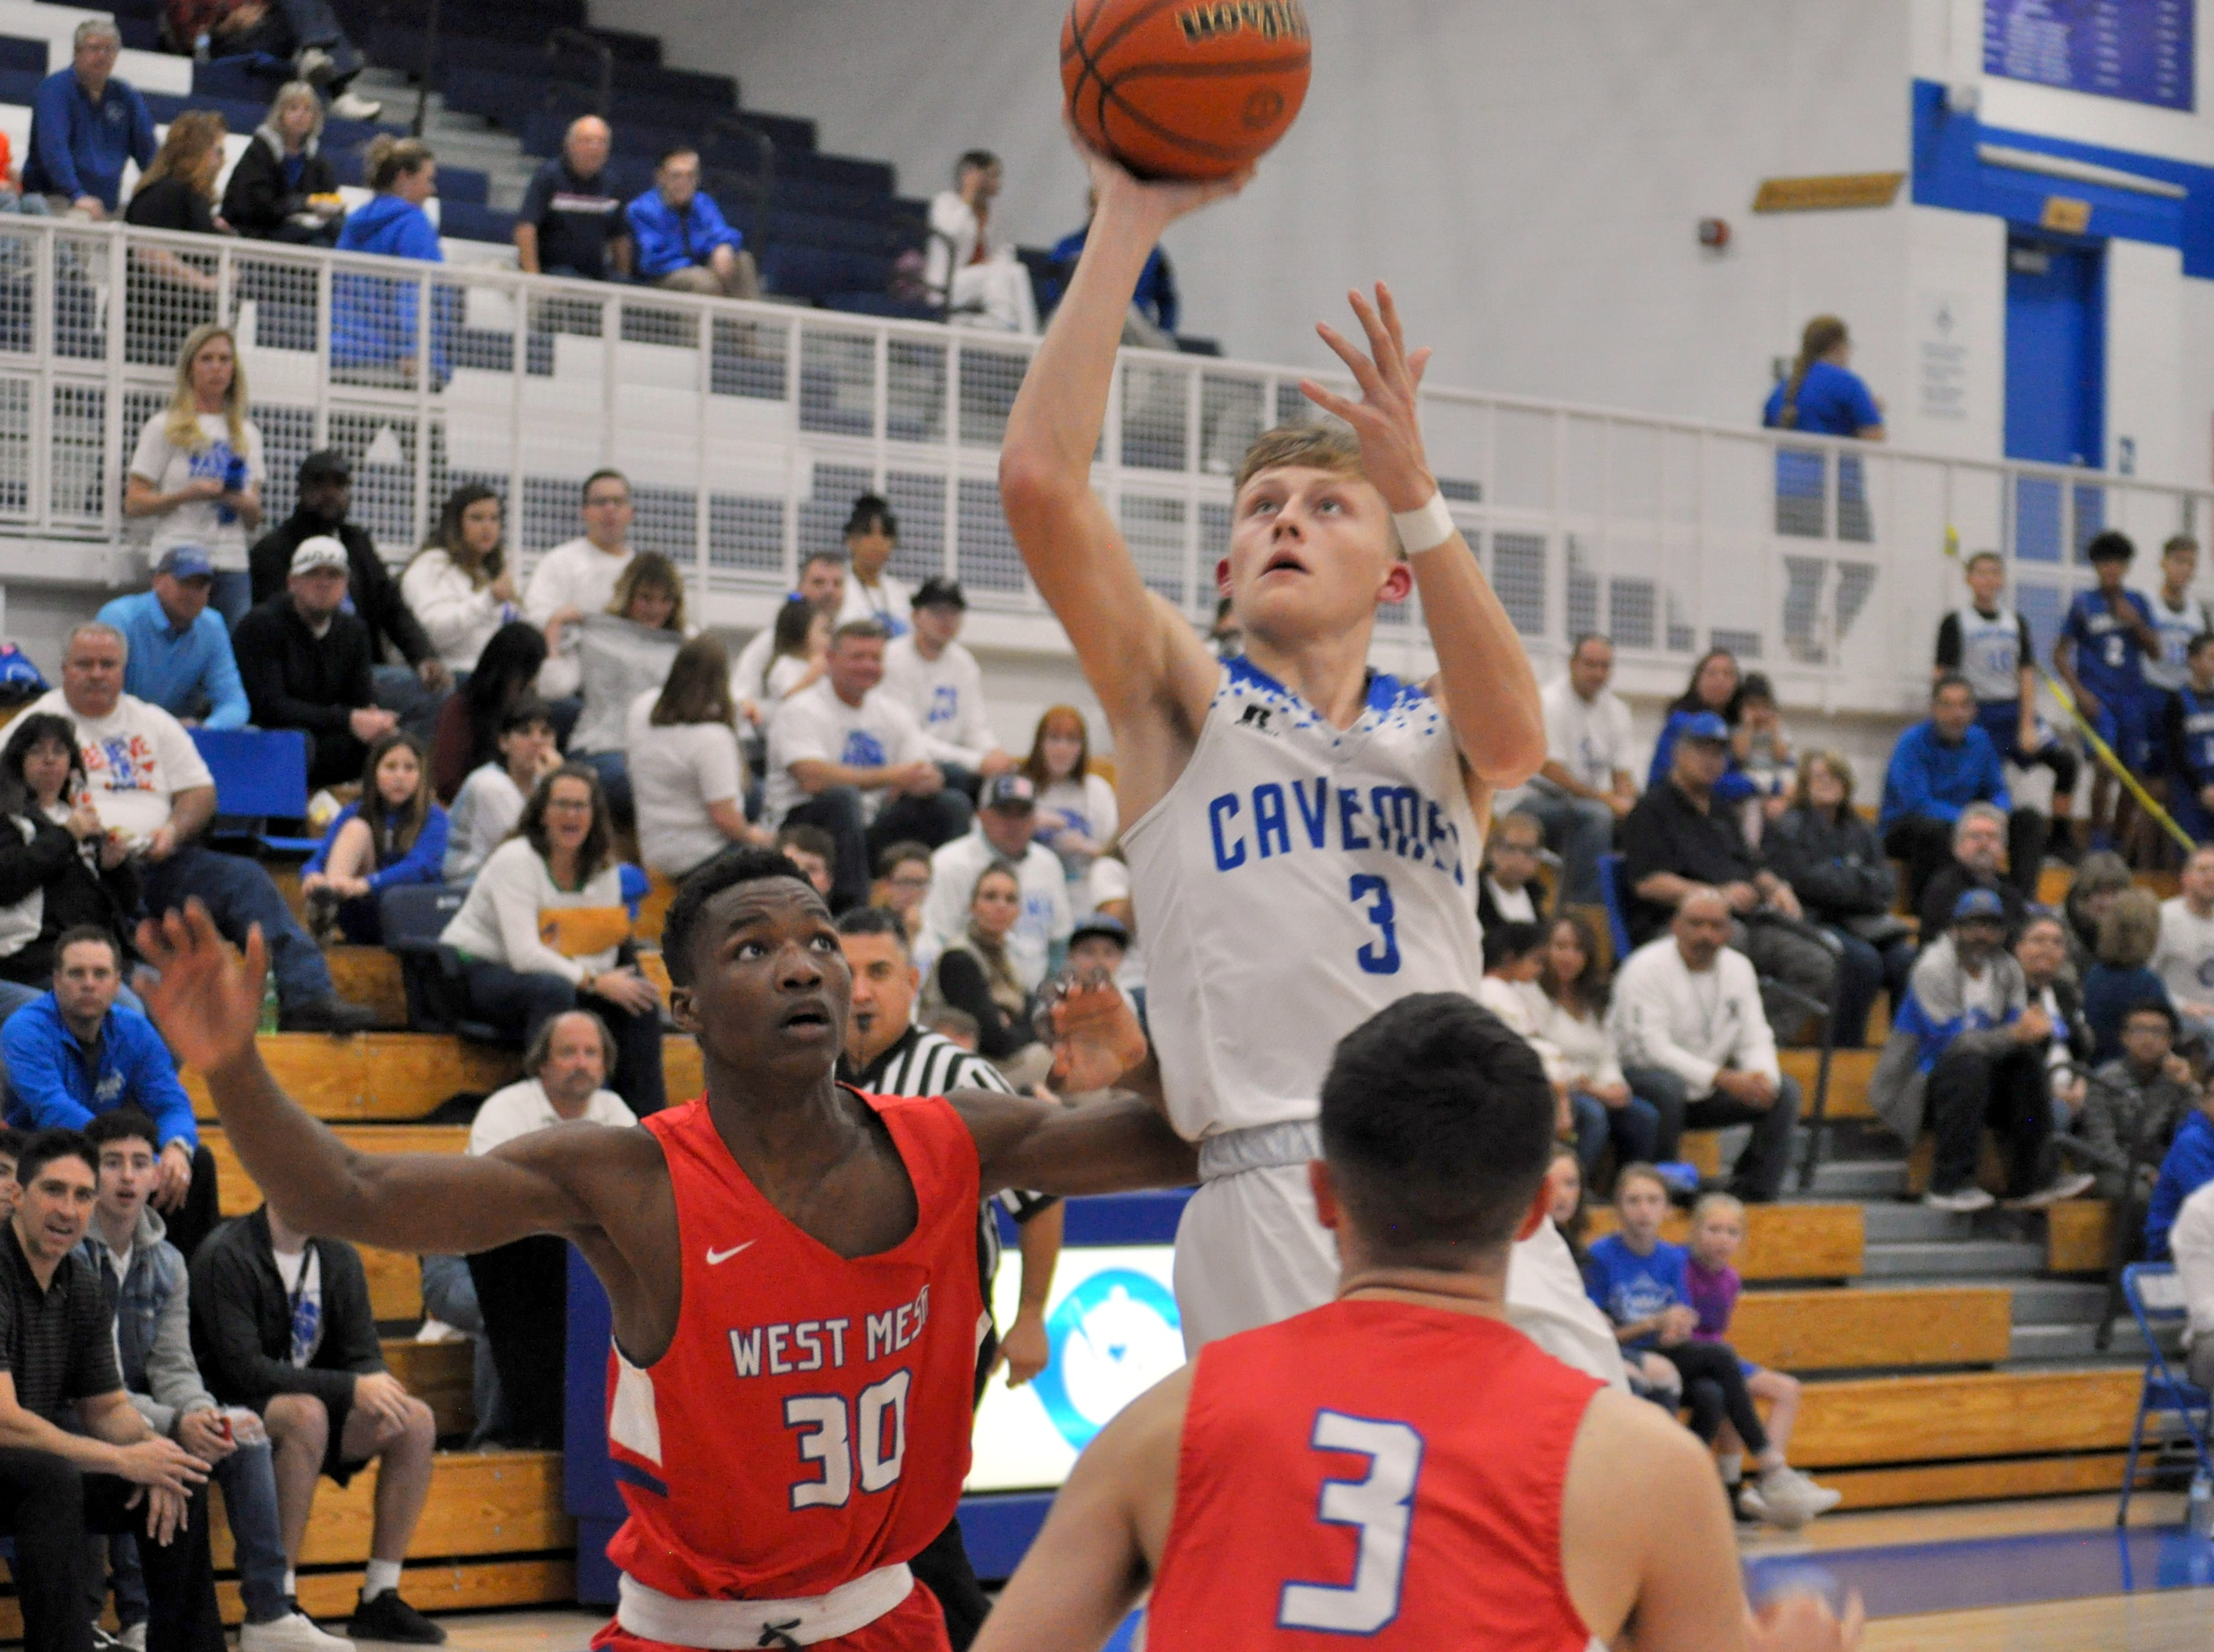 Carlsbad's Riley Hestand takes the first shot of Friday's game against West Mesa. Carlsbad won, 62-54.